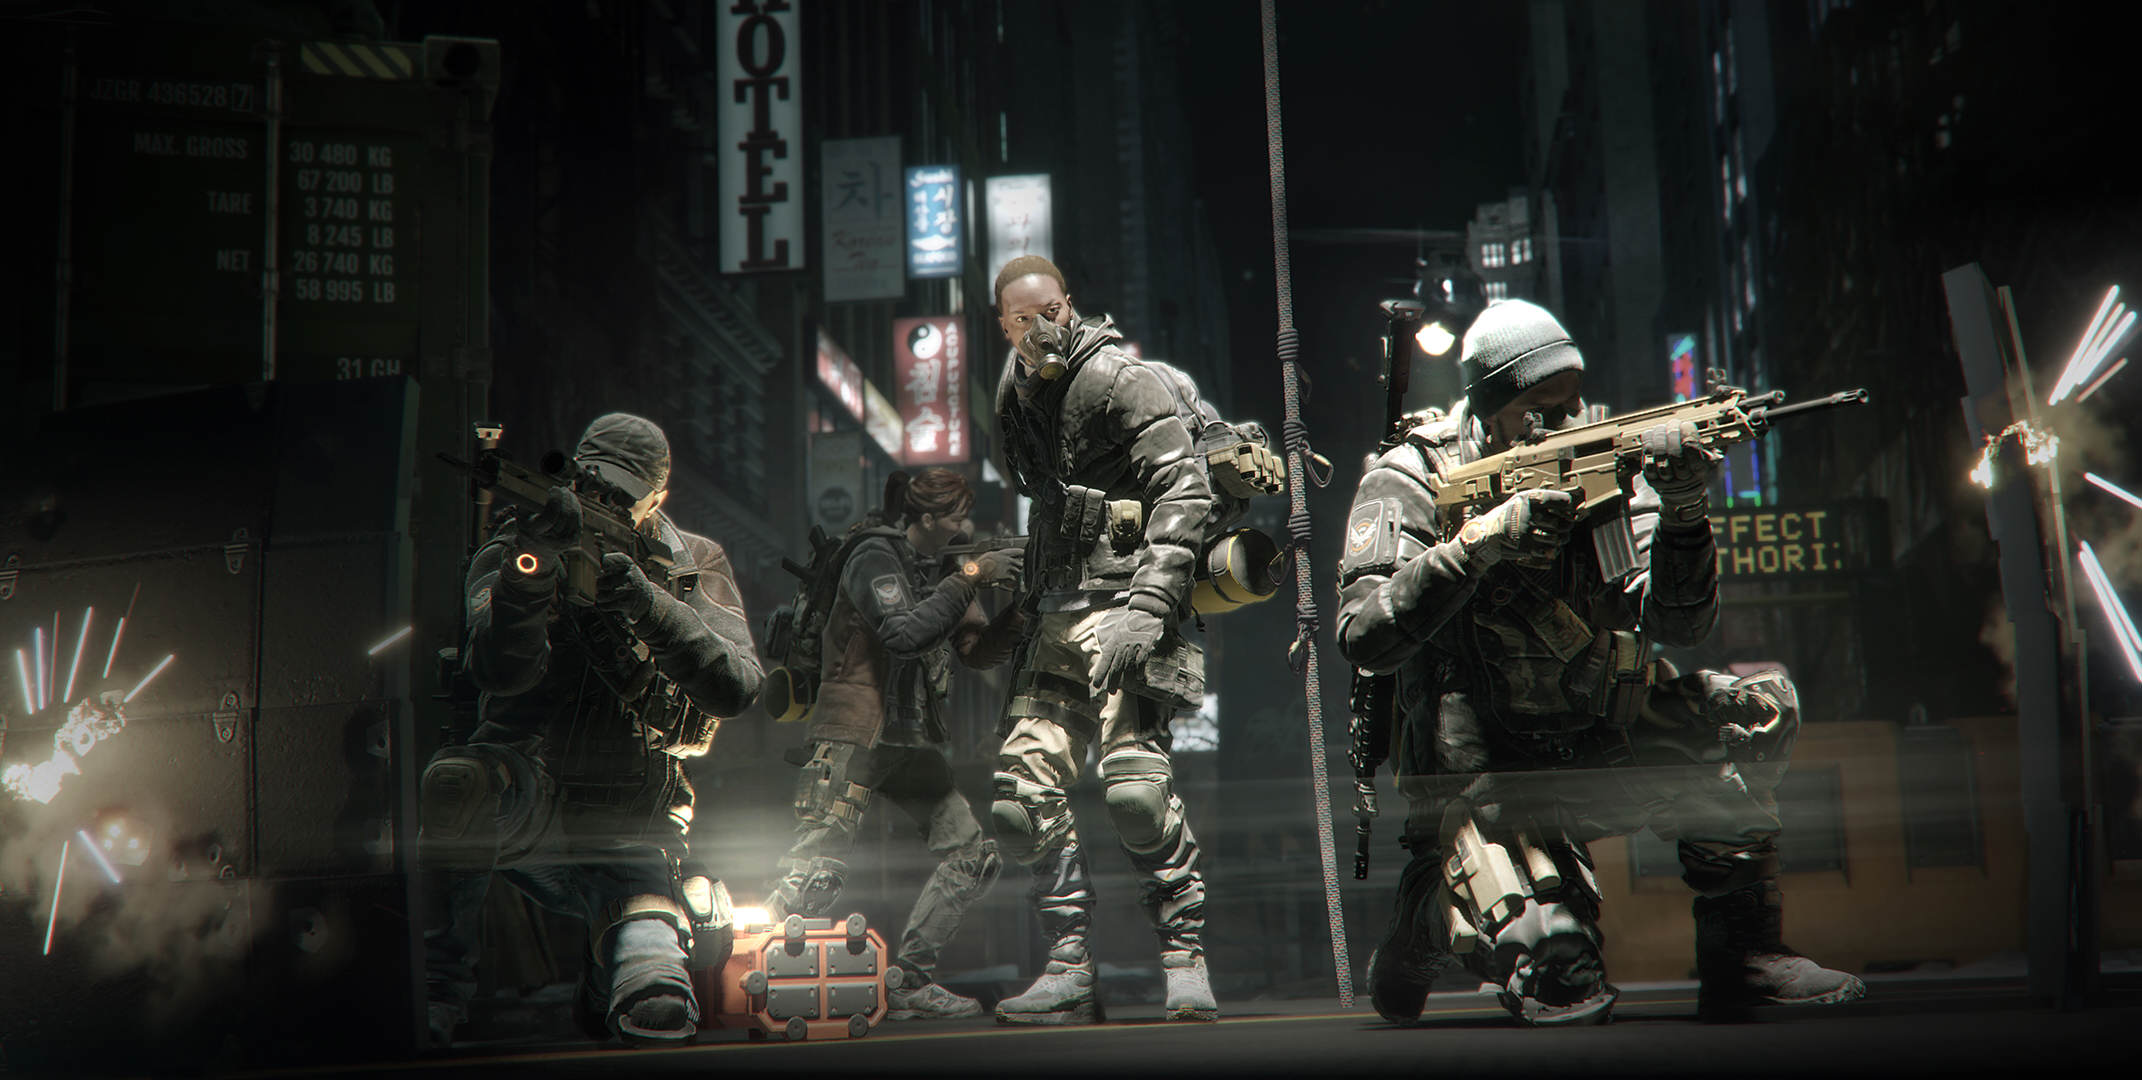 tom clancys the division 5 The Division Running At 60FPS On PC Is Glorious